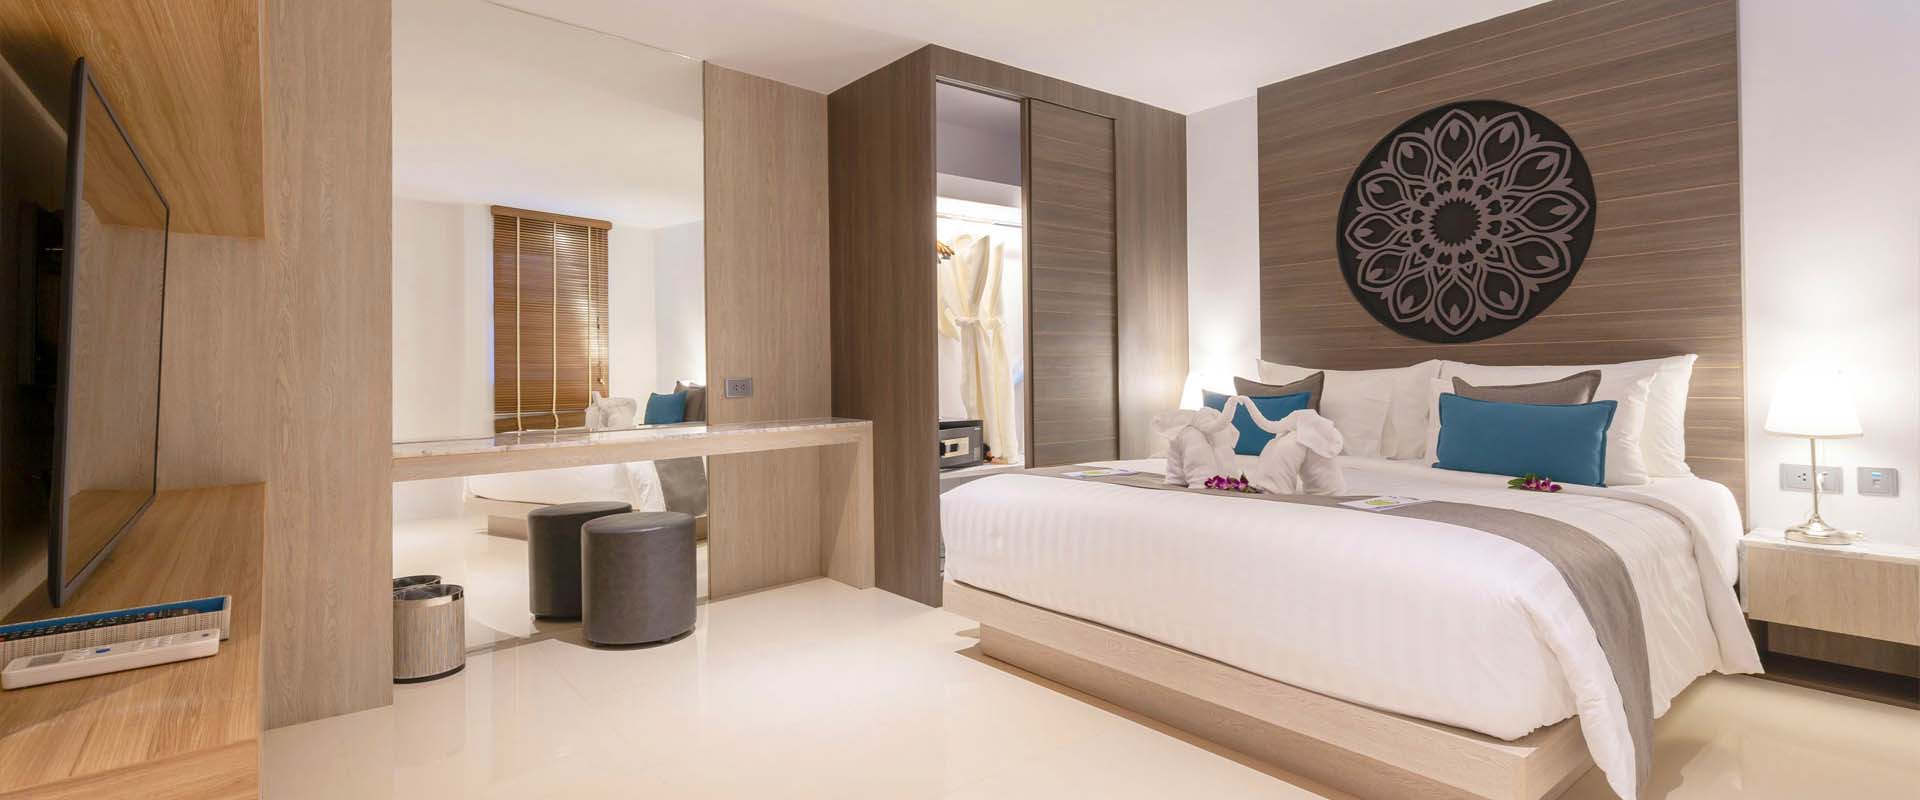 Two Bedroom Suites in Patong